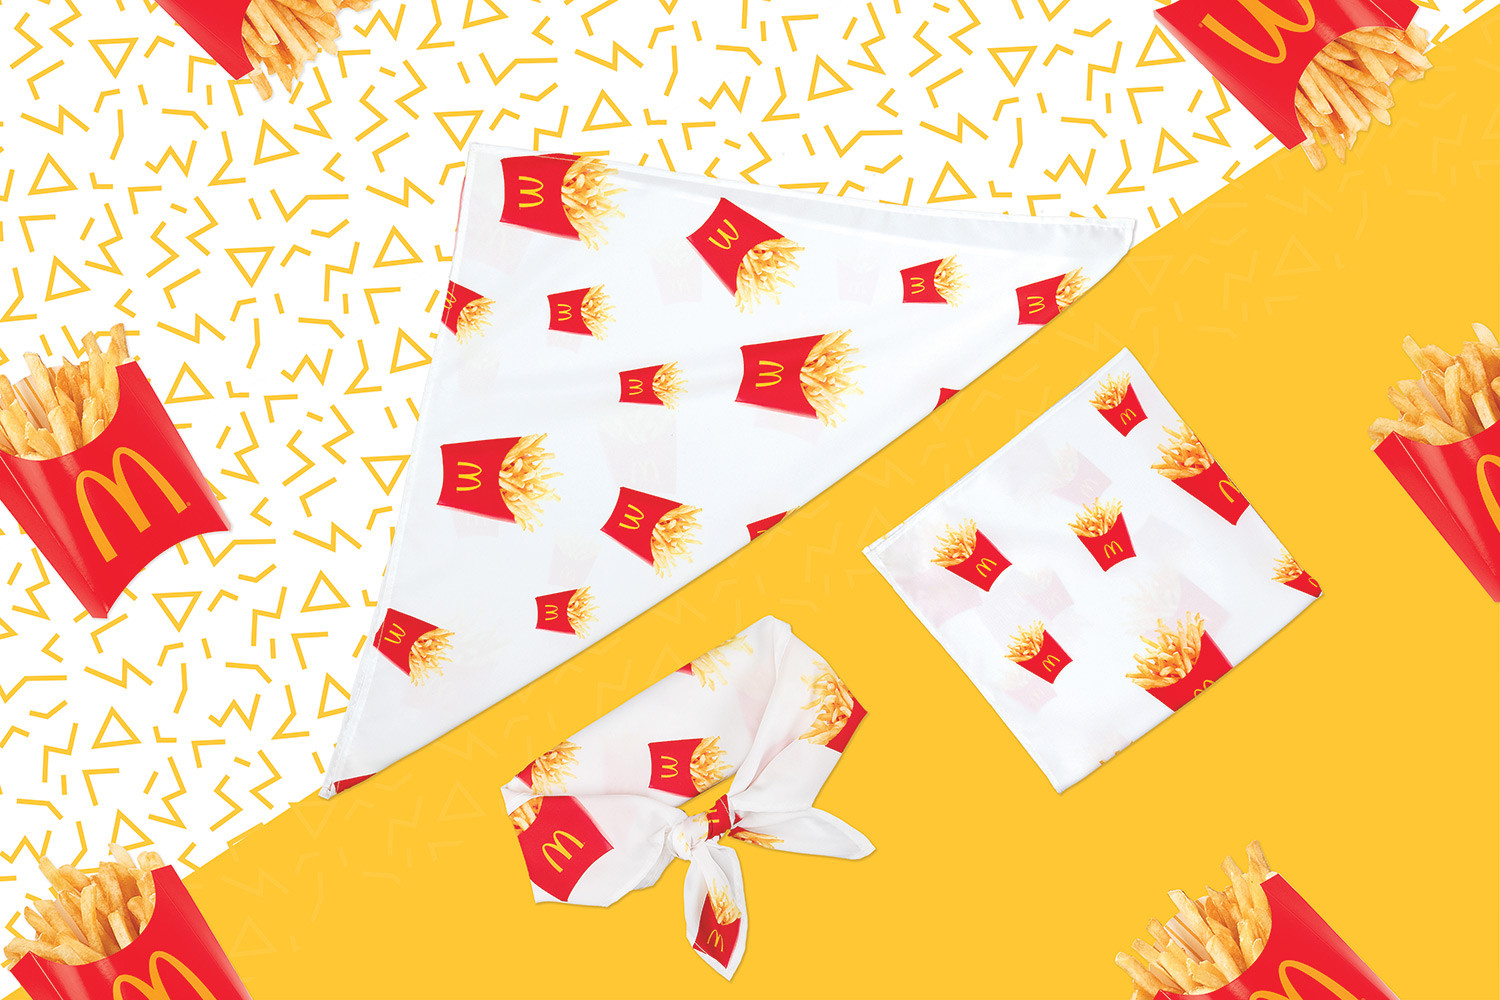 https_%2F%2Fhypebeast.com%2Fimage%2F2018%2F07%2Fmcdonalds-global-mcdelivery-day-collection-2.jpg